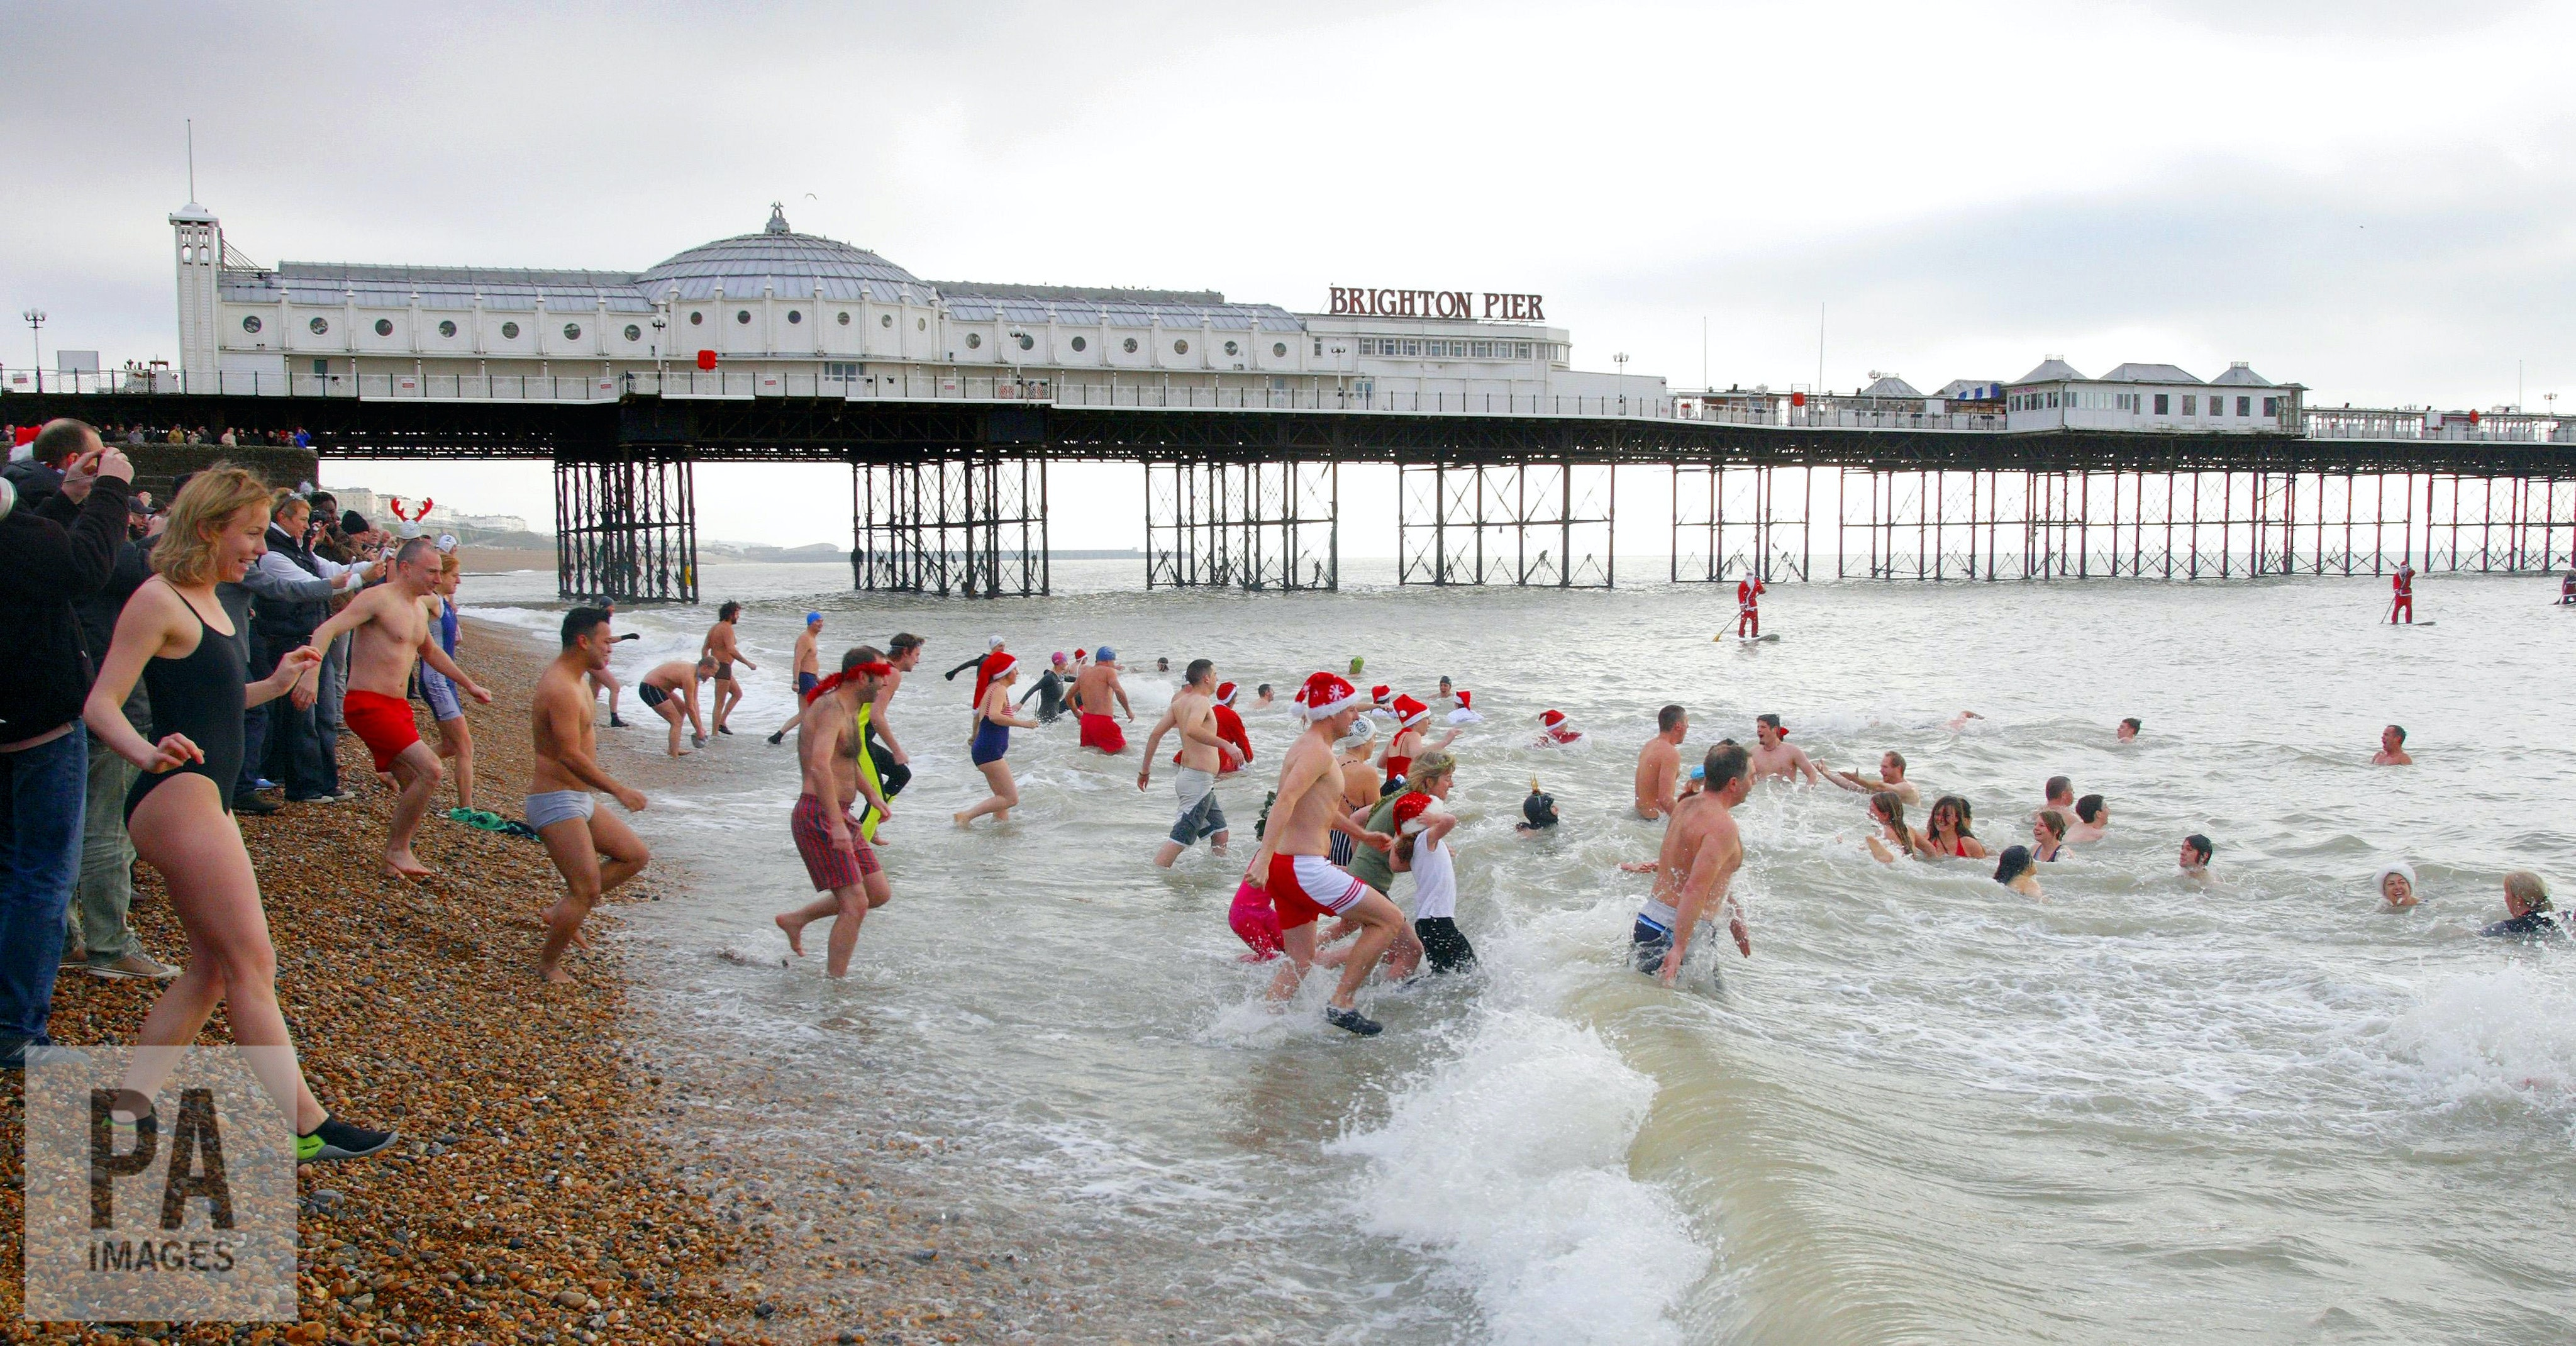 Is a cold water swim good for you, or more likely to send you to the bottom?